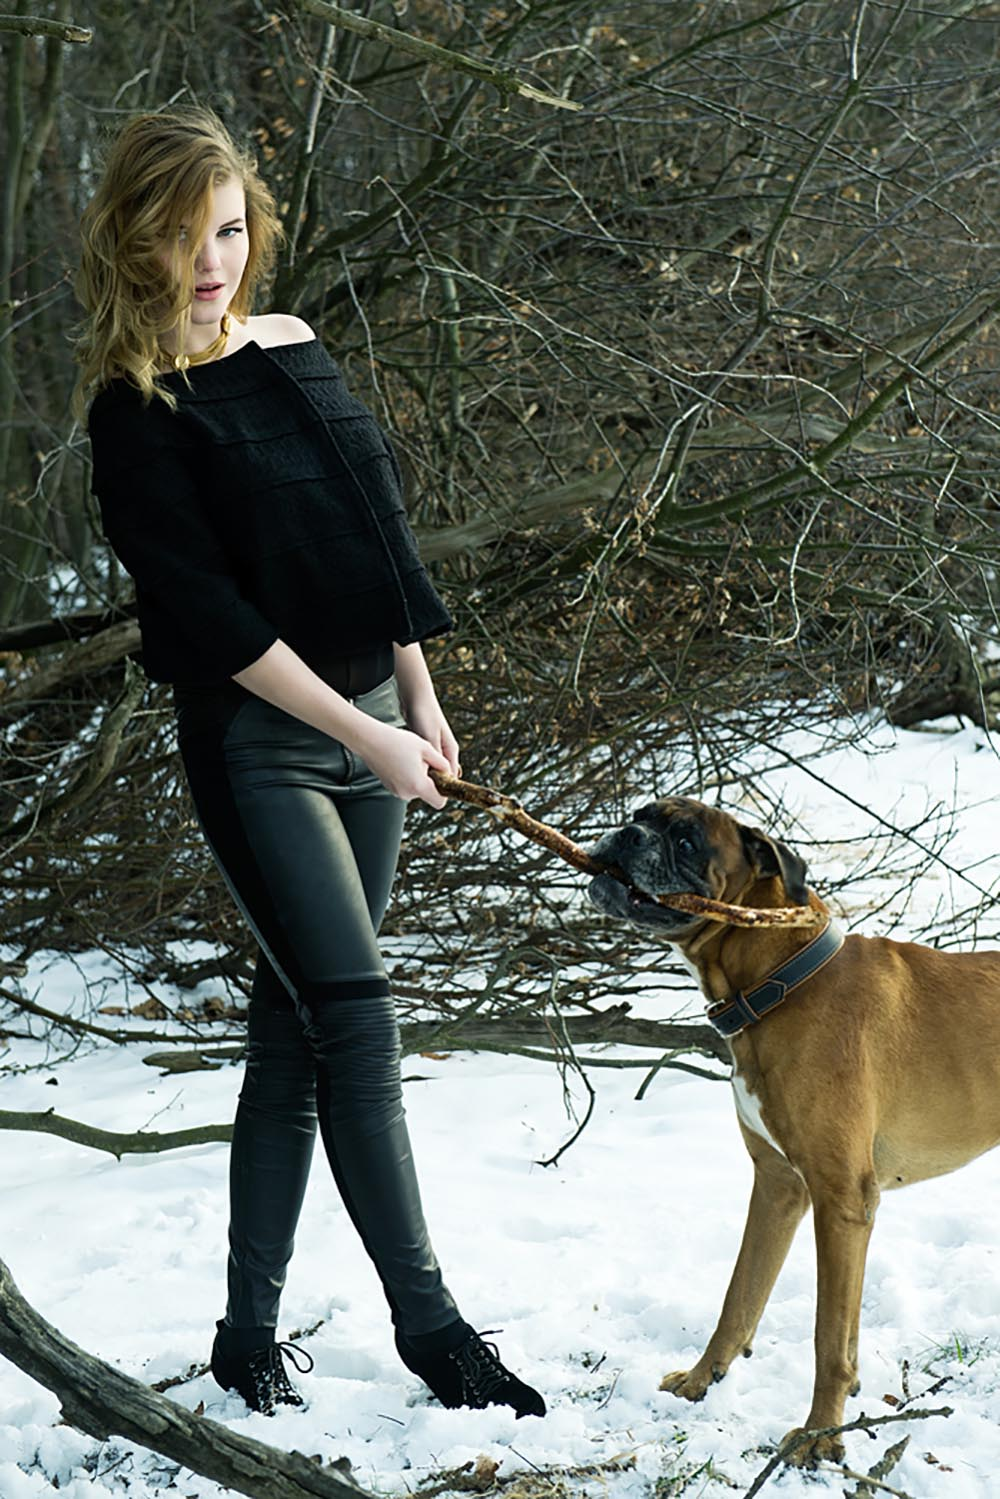 teresa kodolitsch, oliver dorfner, photography, portrait, vienna, dogs, boxer, dogger, fun, snow, winter